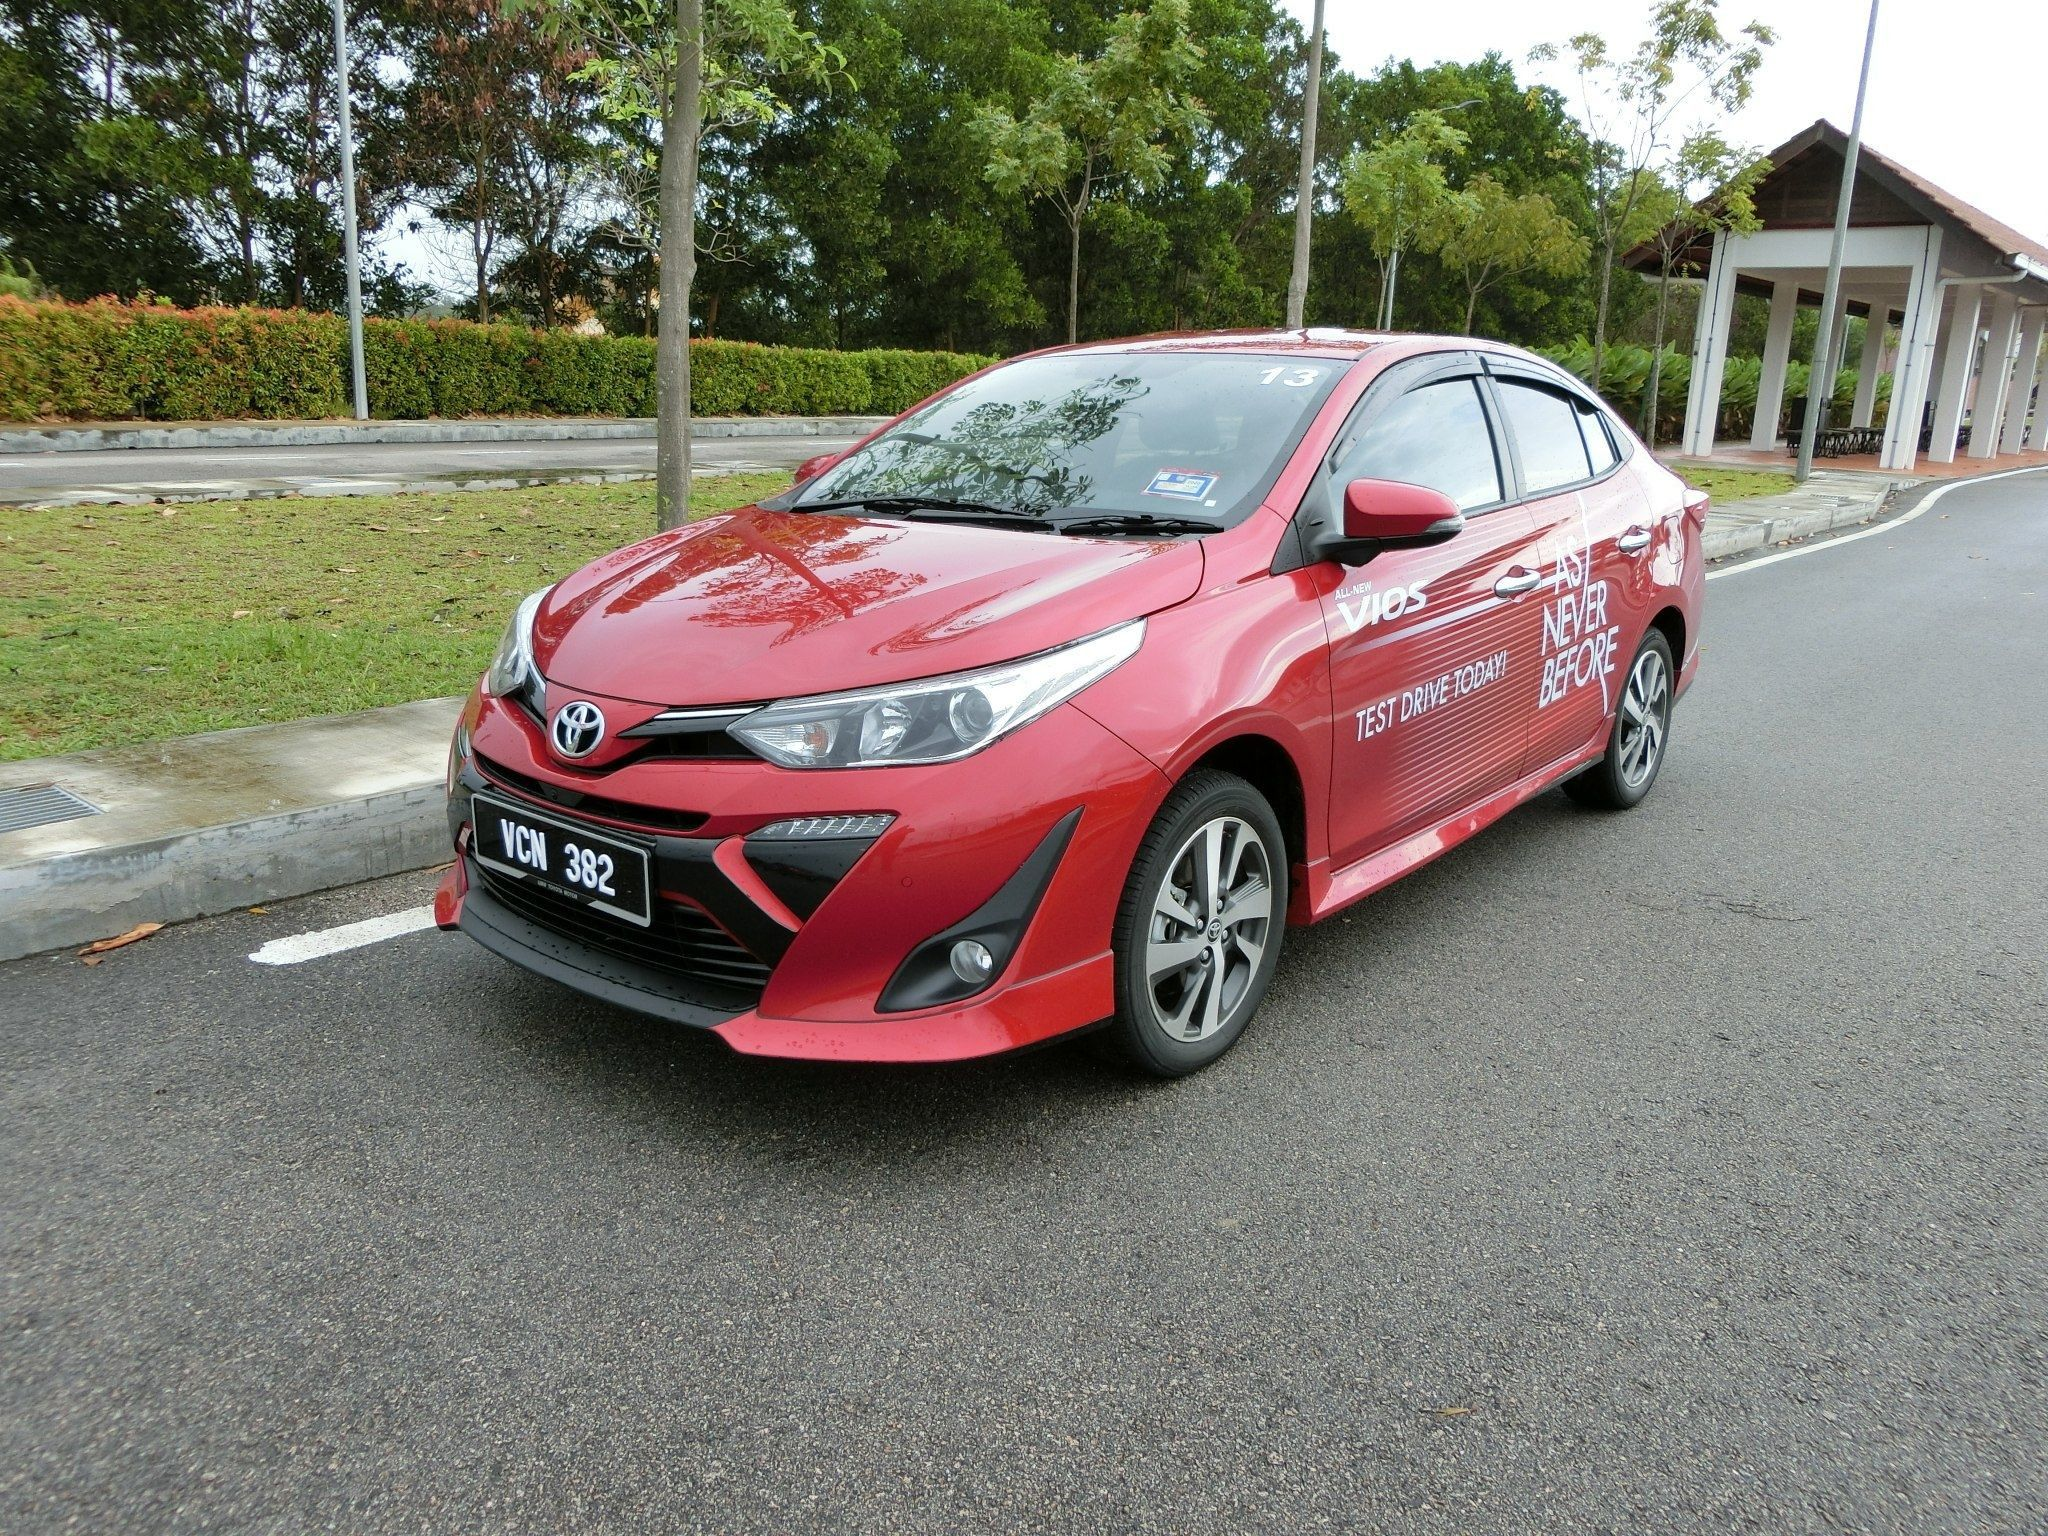 Toyota Vios 2020 Model New Release for Toyota Vios 2020